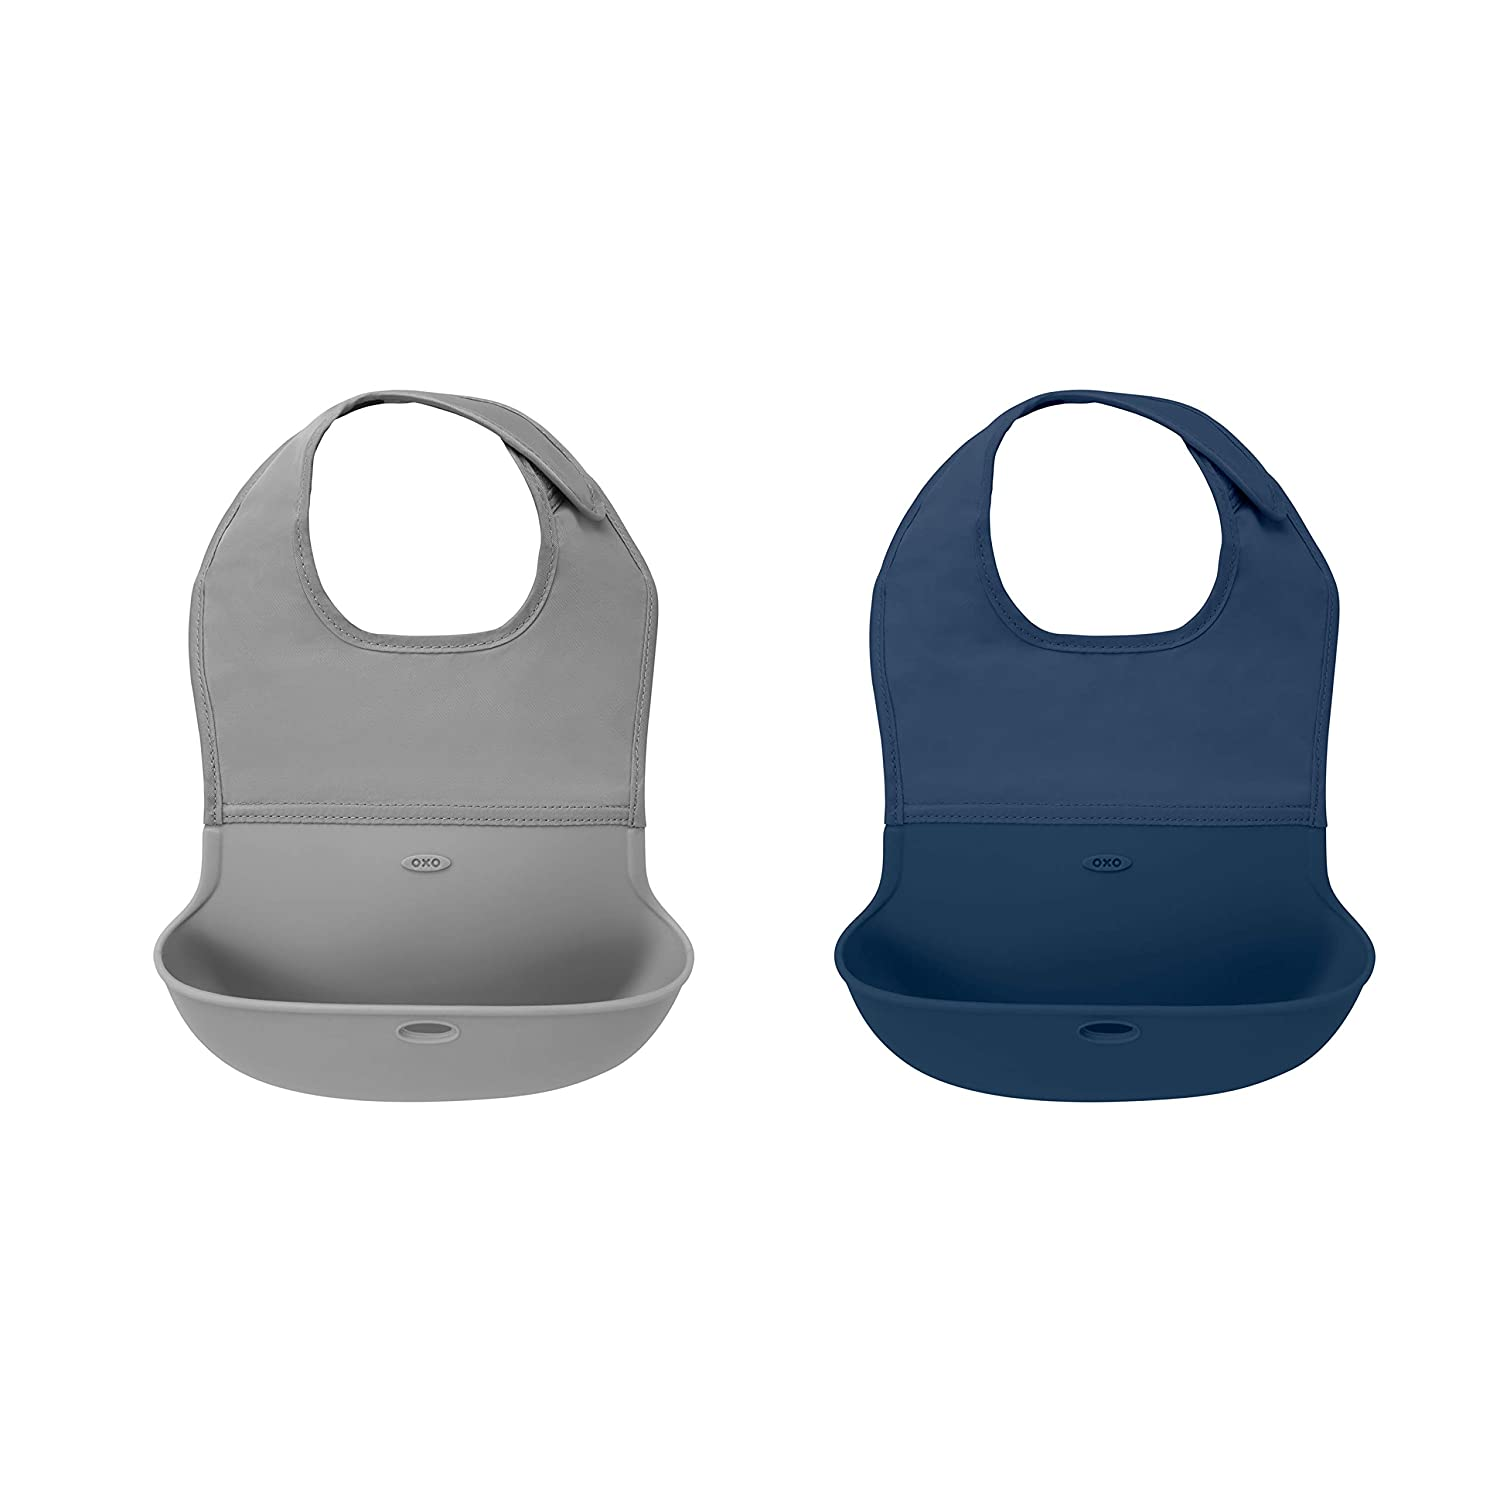 OXO Tot Roll-Up Bib 2 Pack Gray/Navy